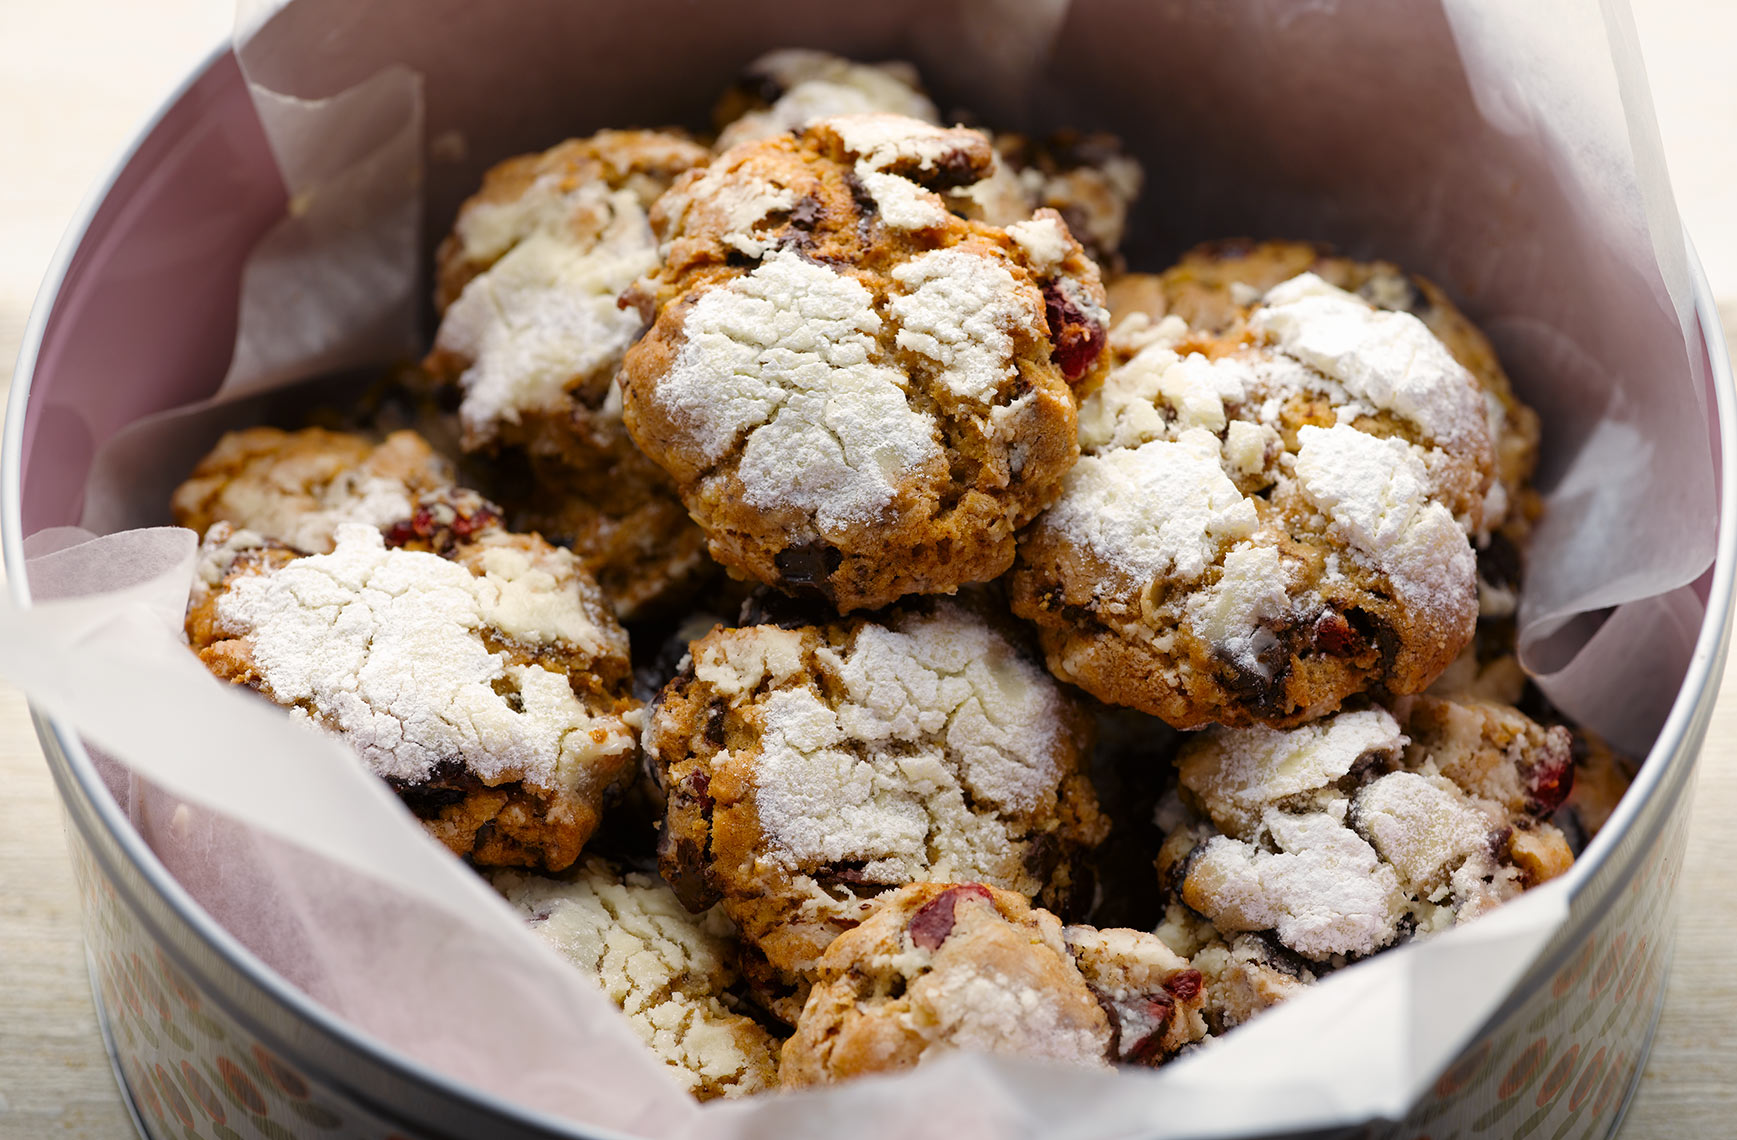 Cranberry and chocolate  snow cookies | Colin Campbell - Food Photographer